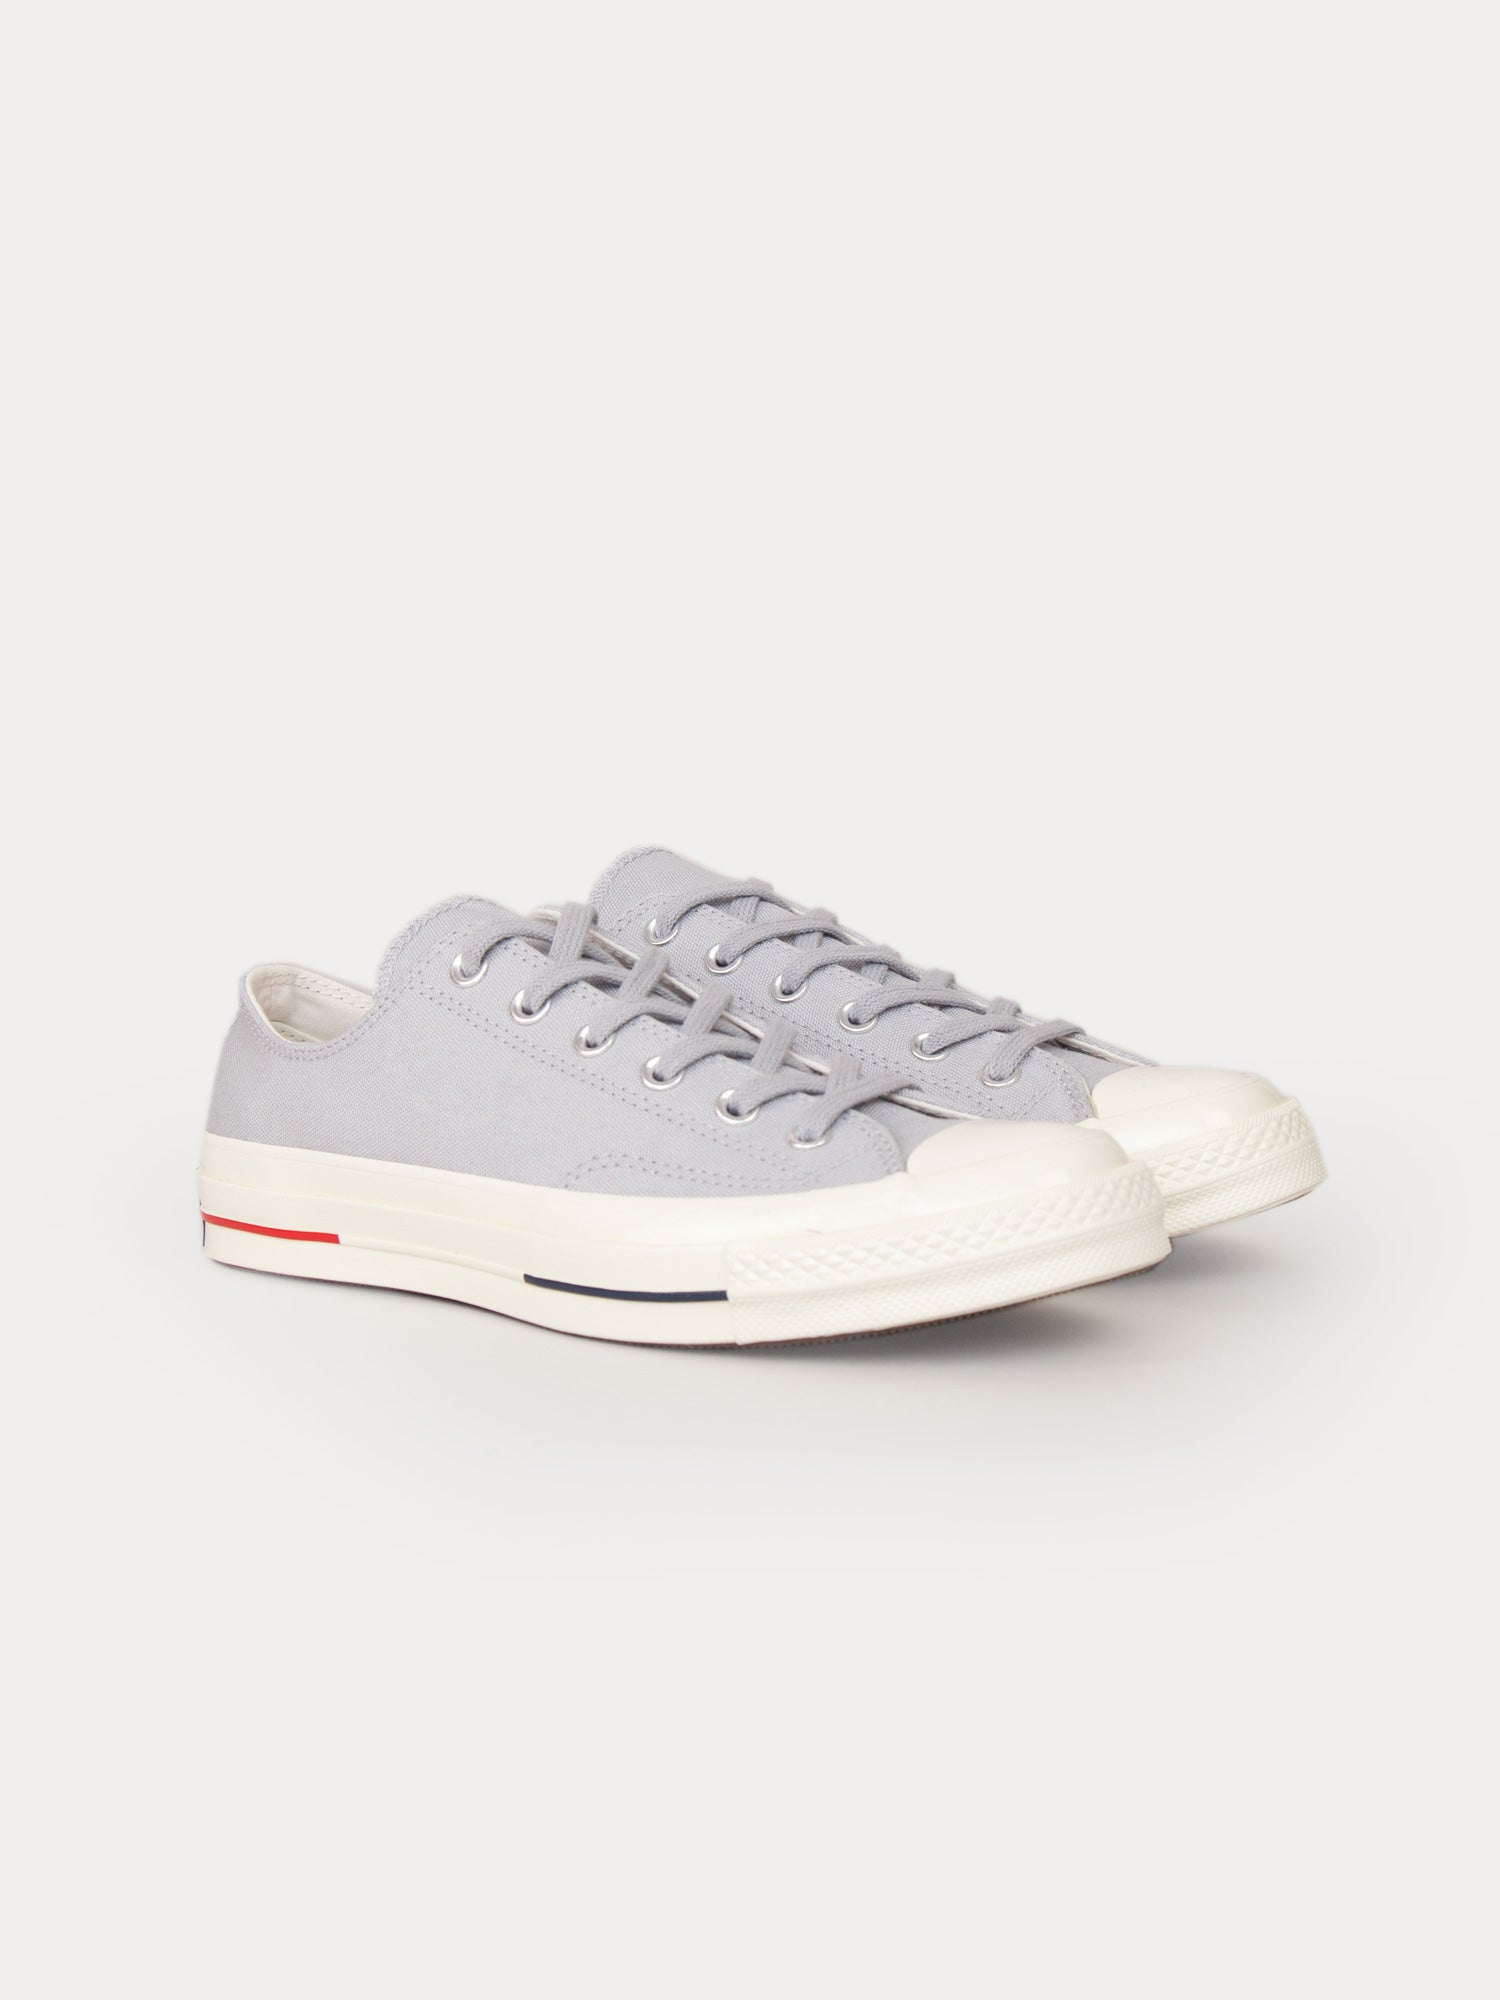 Converse Chuck Taylor All Star 70 Ox (Wolf Grey)